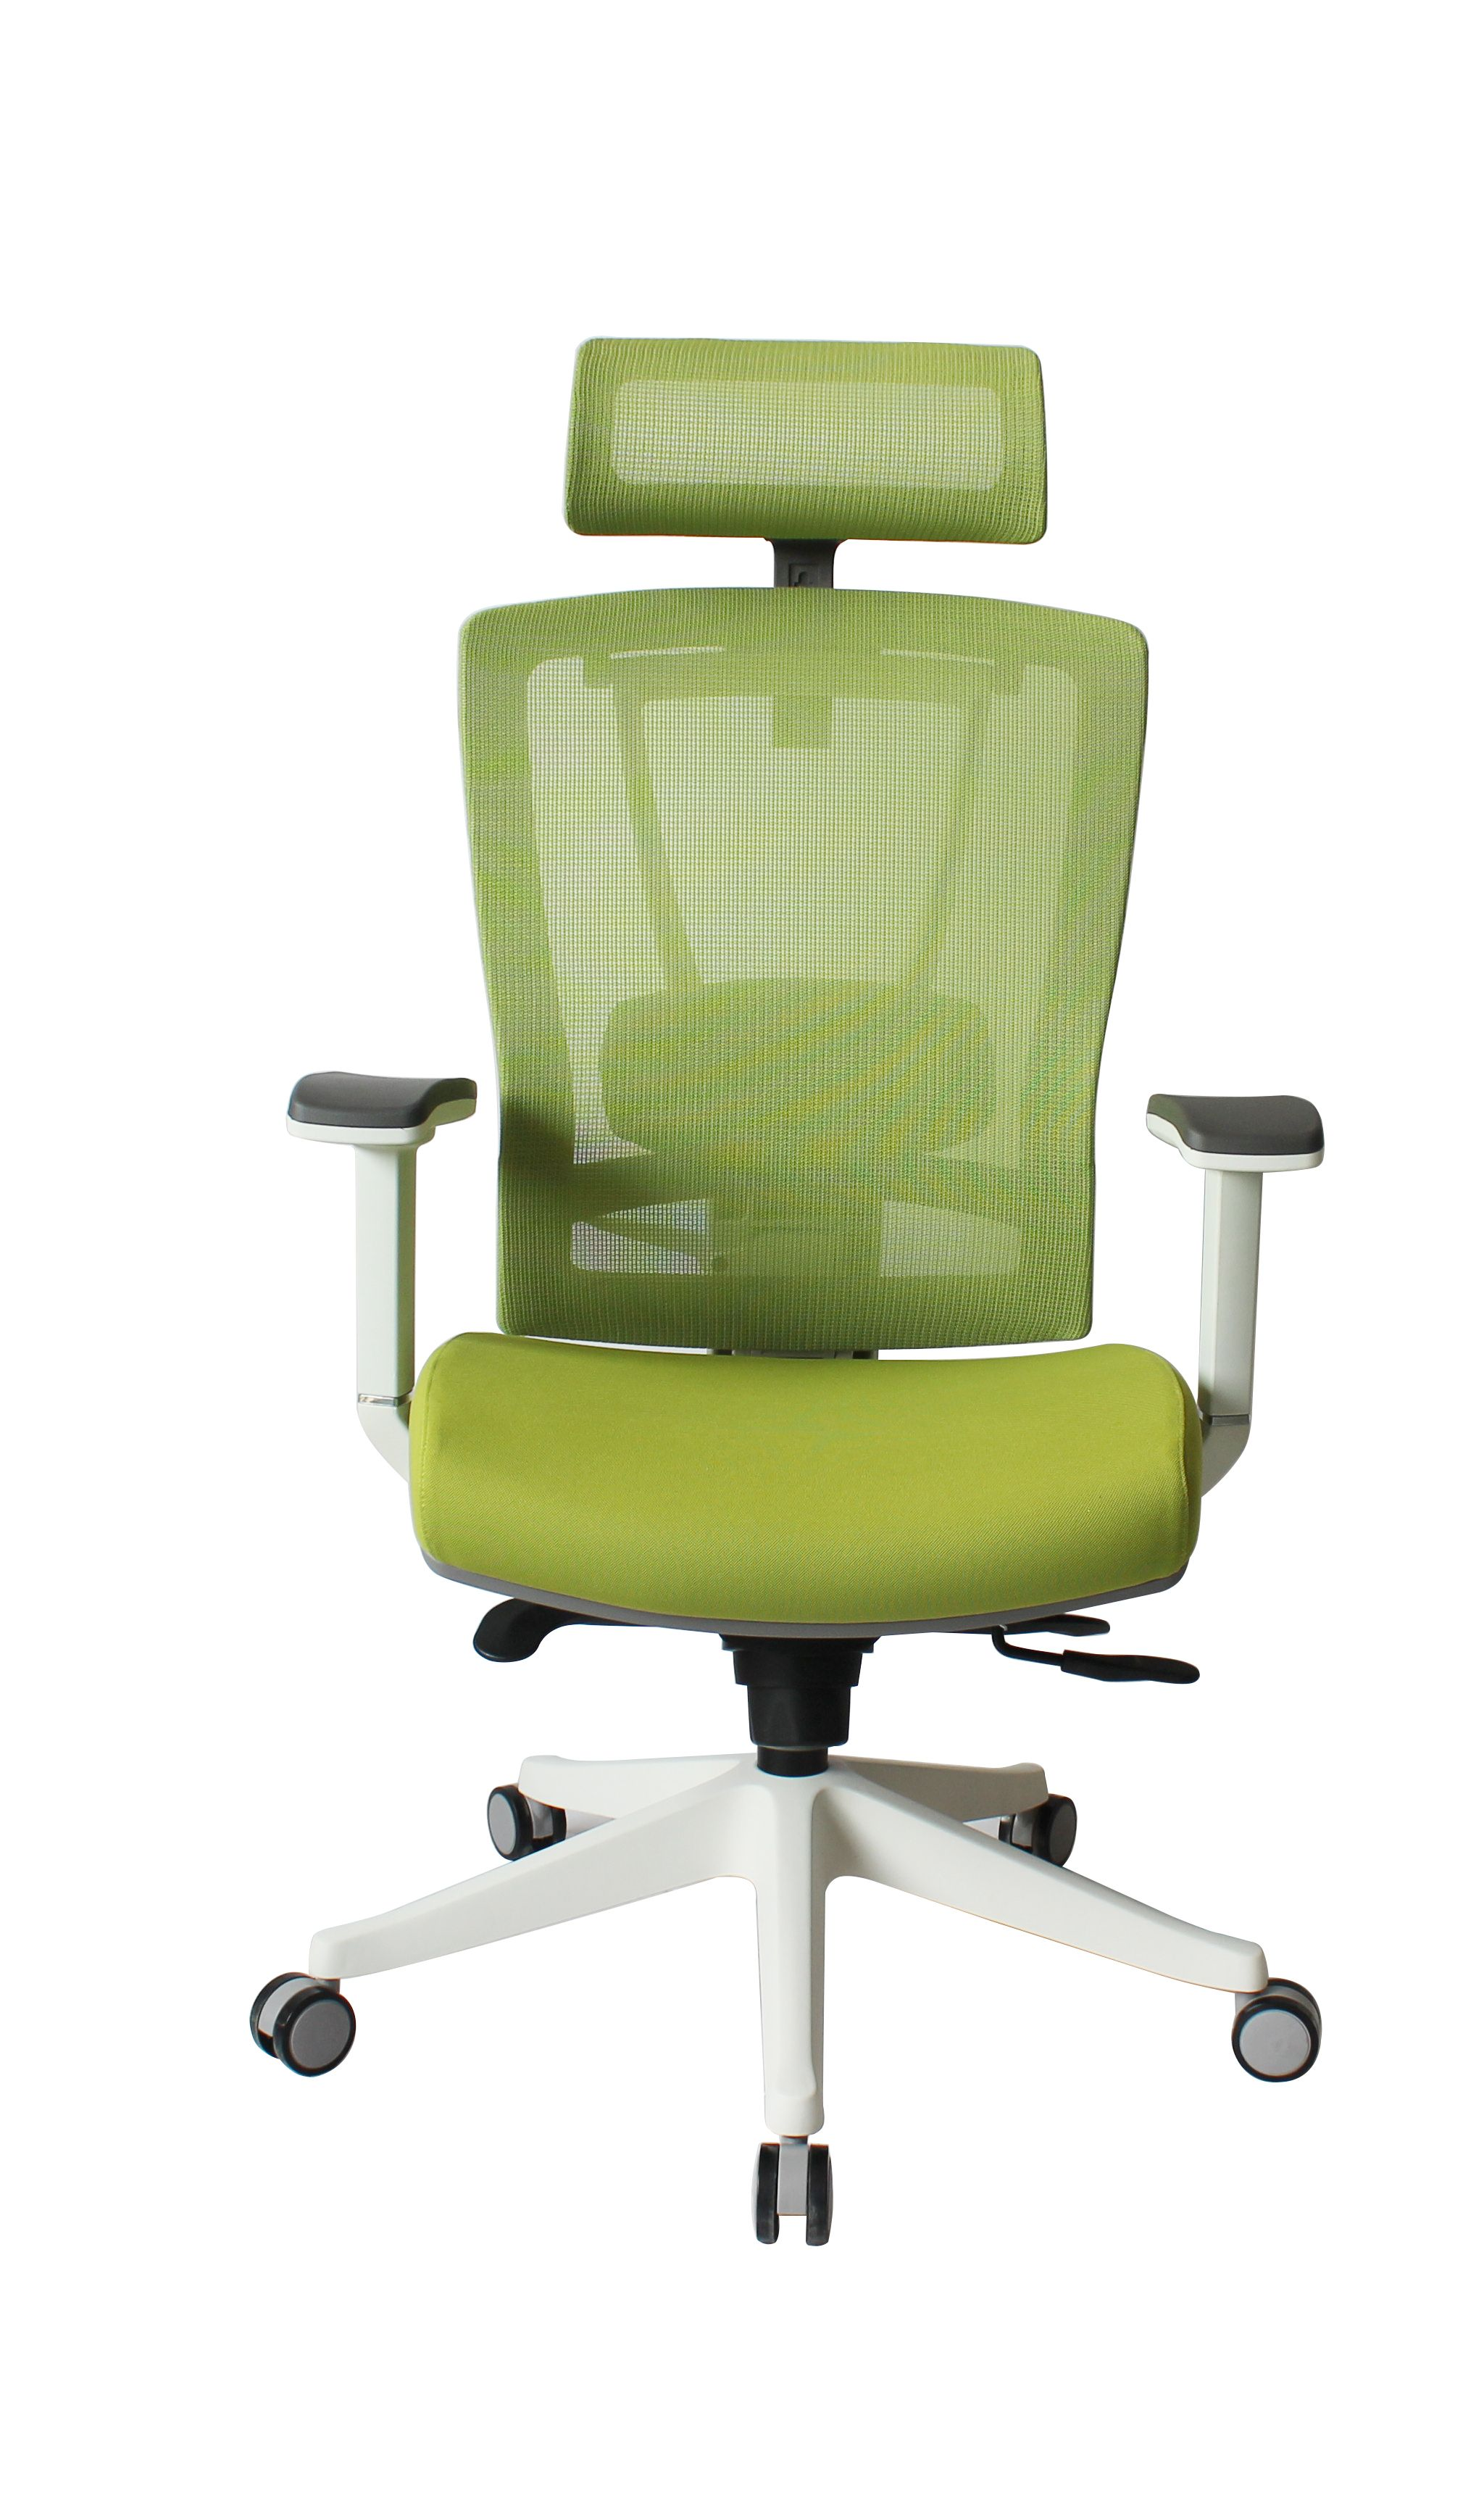 Hot Sales Super Comfortable Chair White Frame Adjustable